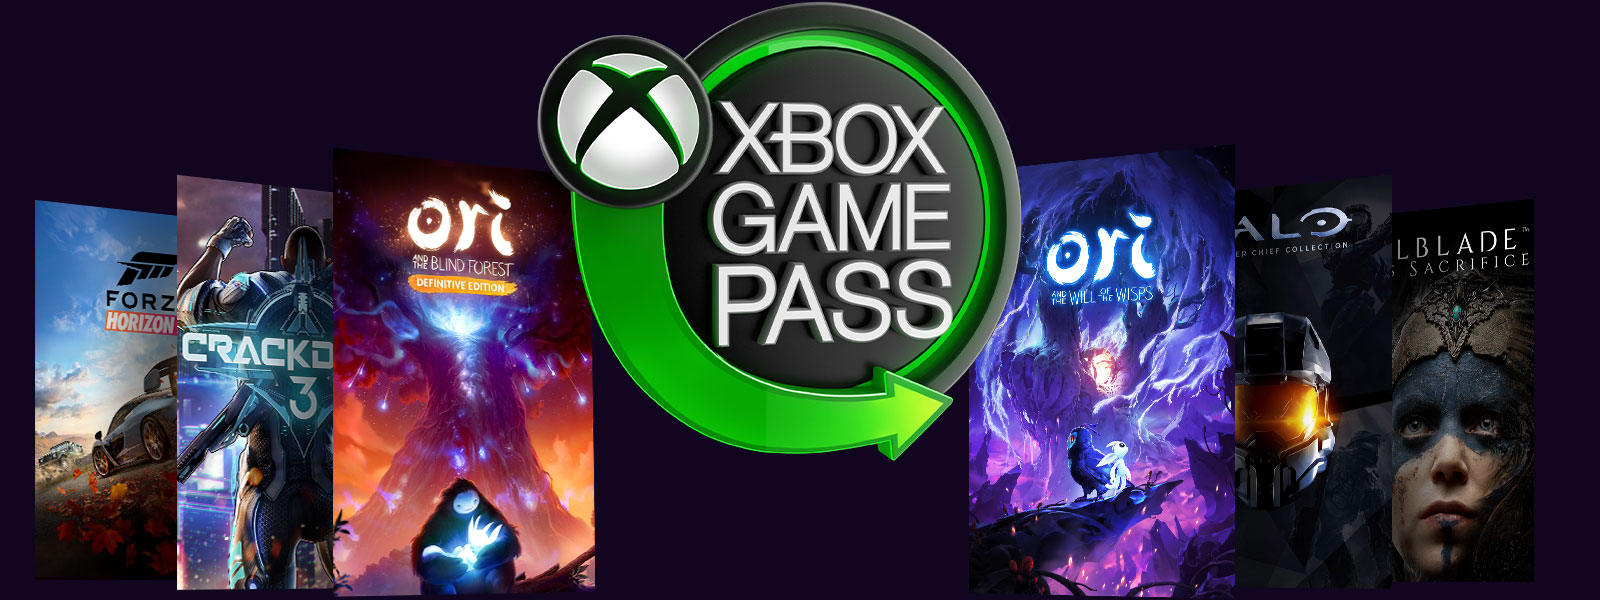 Logo di Xbox Game Pass con immagini delle confezioni di Ori and the Will of the Wisps, Ori and the Blind Forest, Crackdown 3, Halo, Forza Horizon 4 e Hellblade